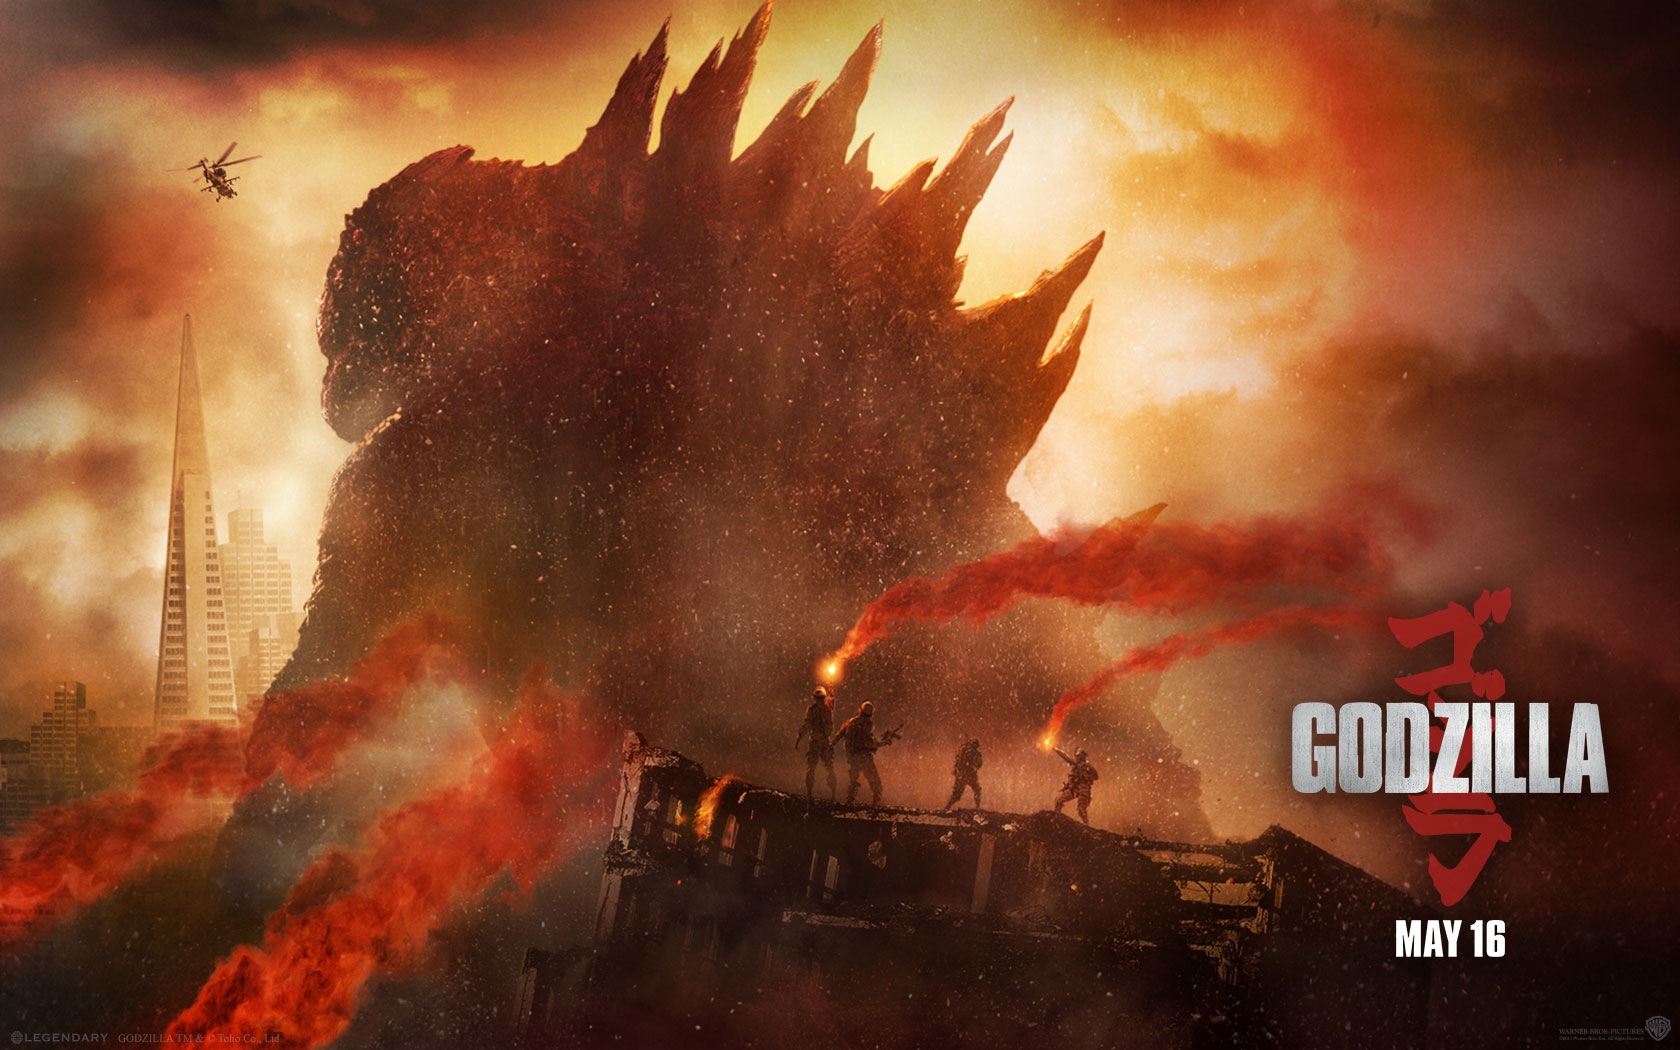 Wallpaper Godzilla 2014 Pictures to pin 1680x1050